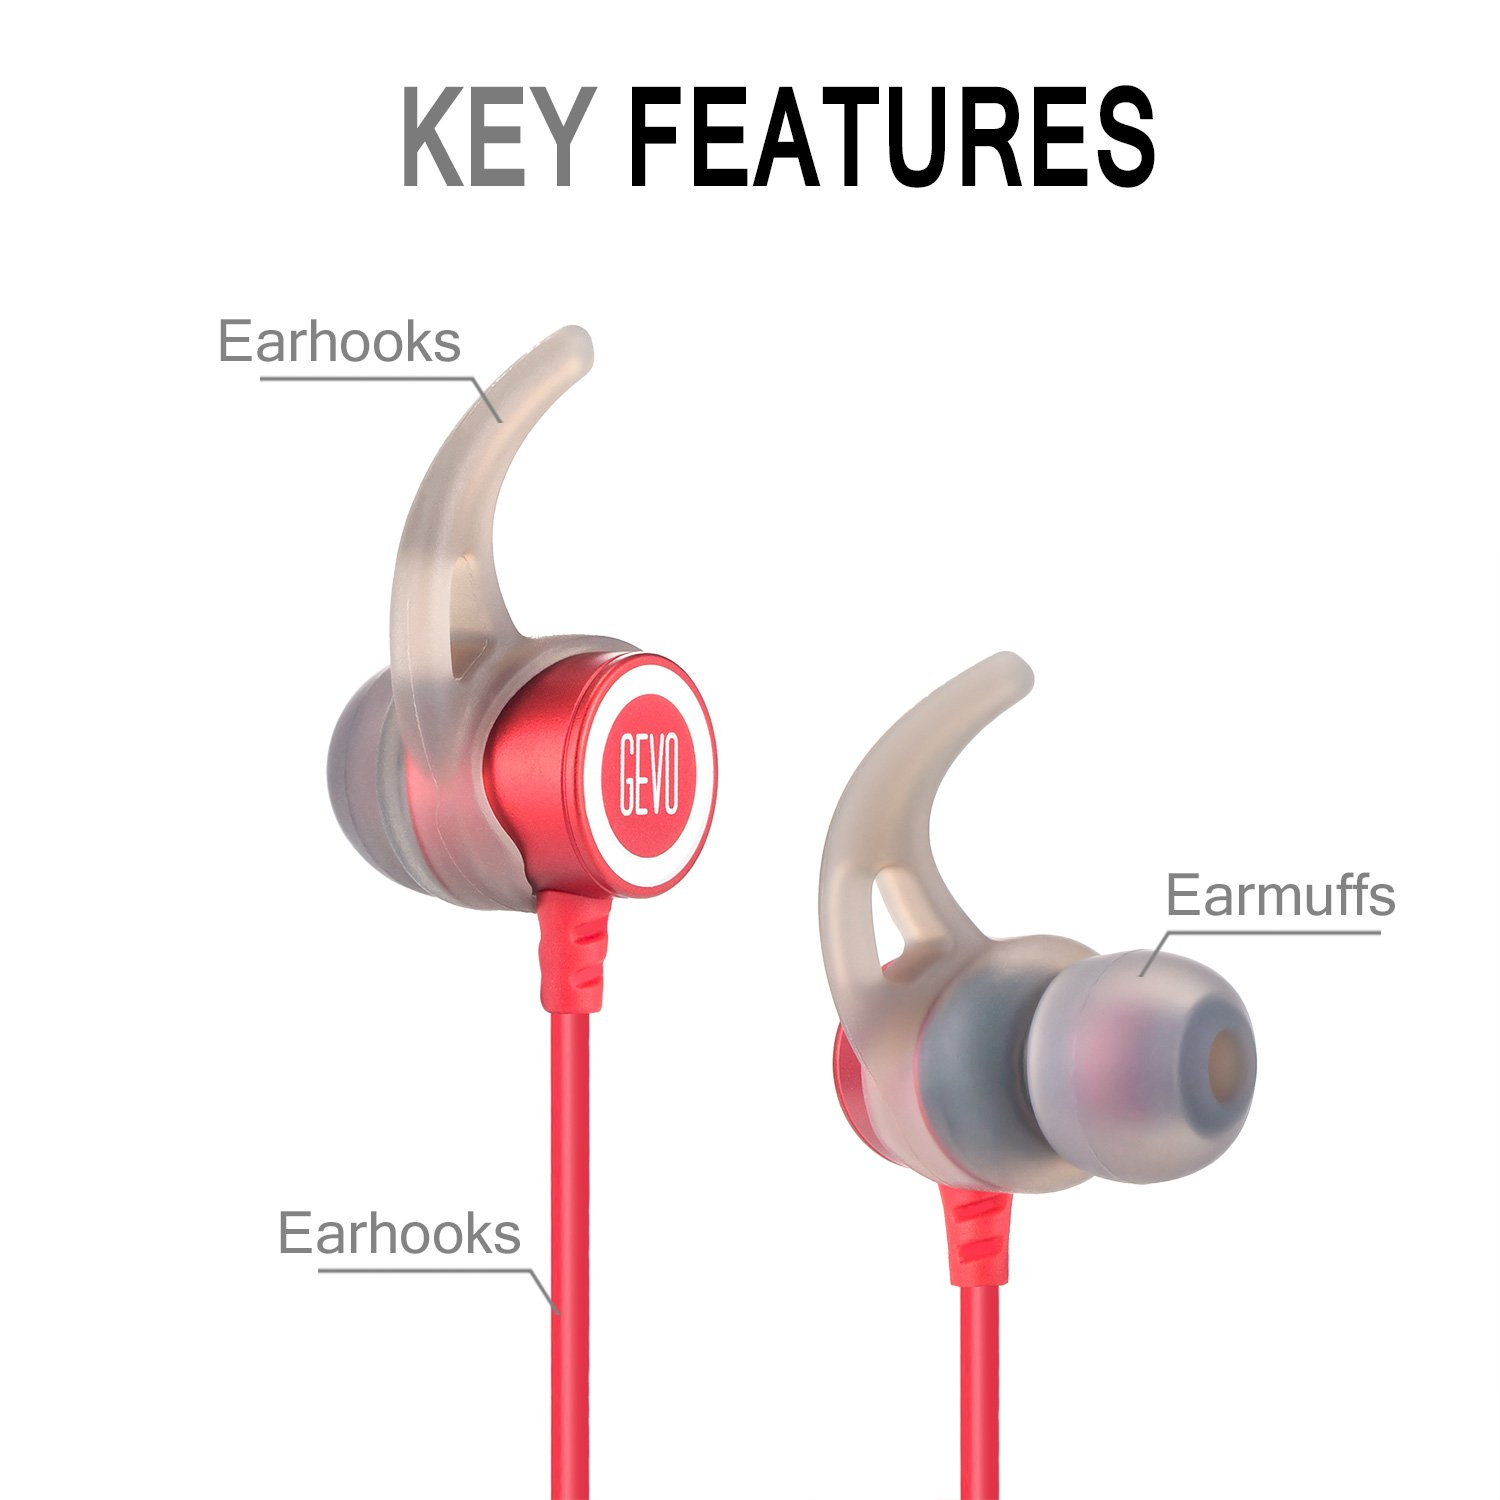 Zakitane In-Ear Earbud Sport Earphones Noise Isolating Headphones with Microphone Stereo Bass Dynamic Crystal Clear Sound, Ergonomic Comfort-Fit, for iPhone 6 / 6 Plus /5 / 5c /SE 4 and Android Phones (Red&White)